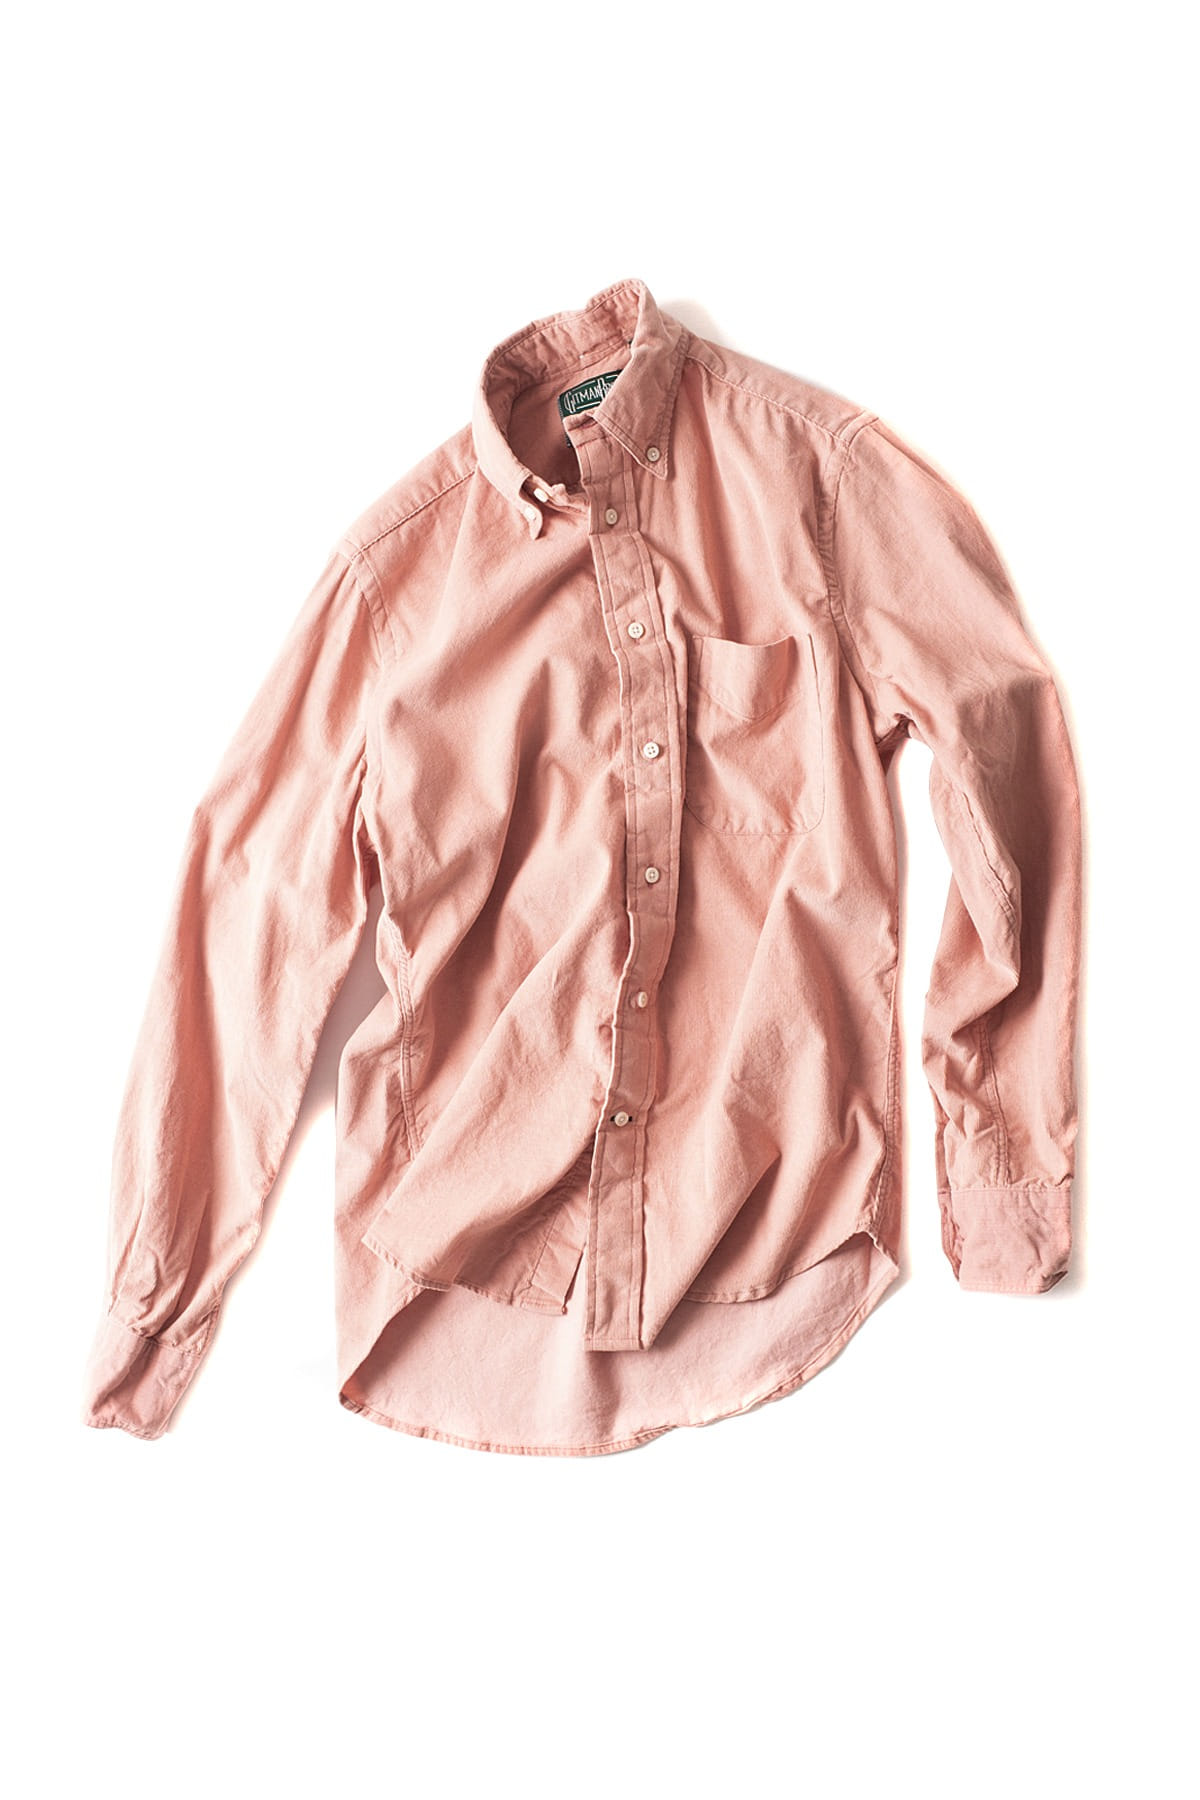 GITMANBROS : Vintage Button Down Shirt (Pink)